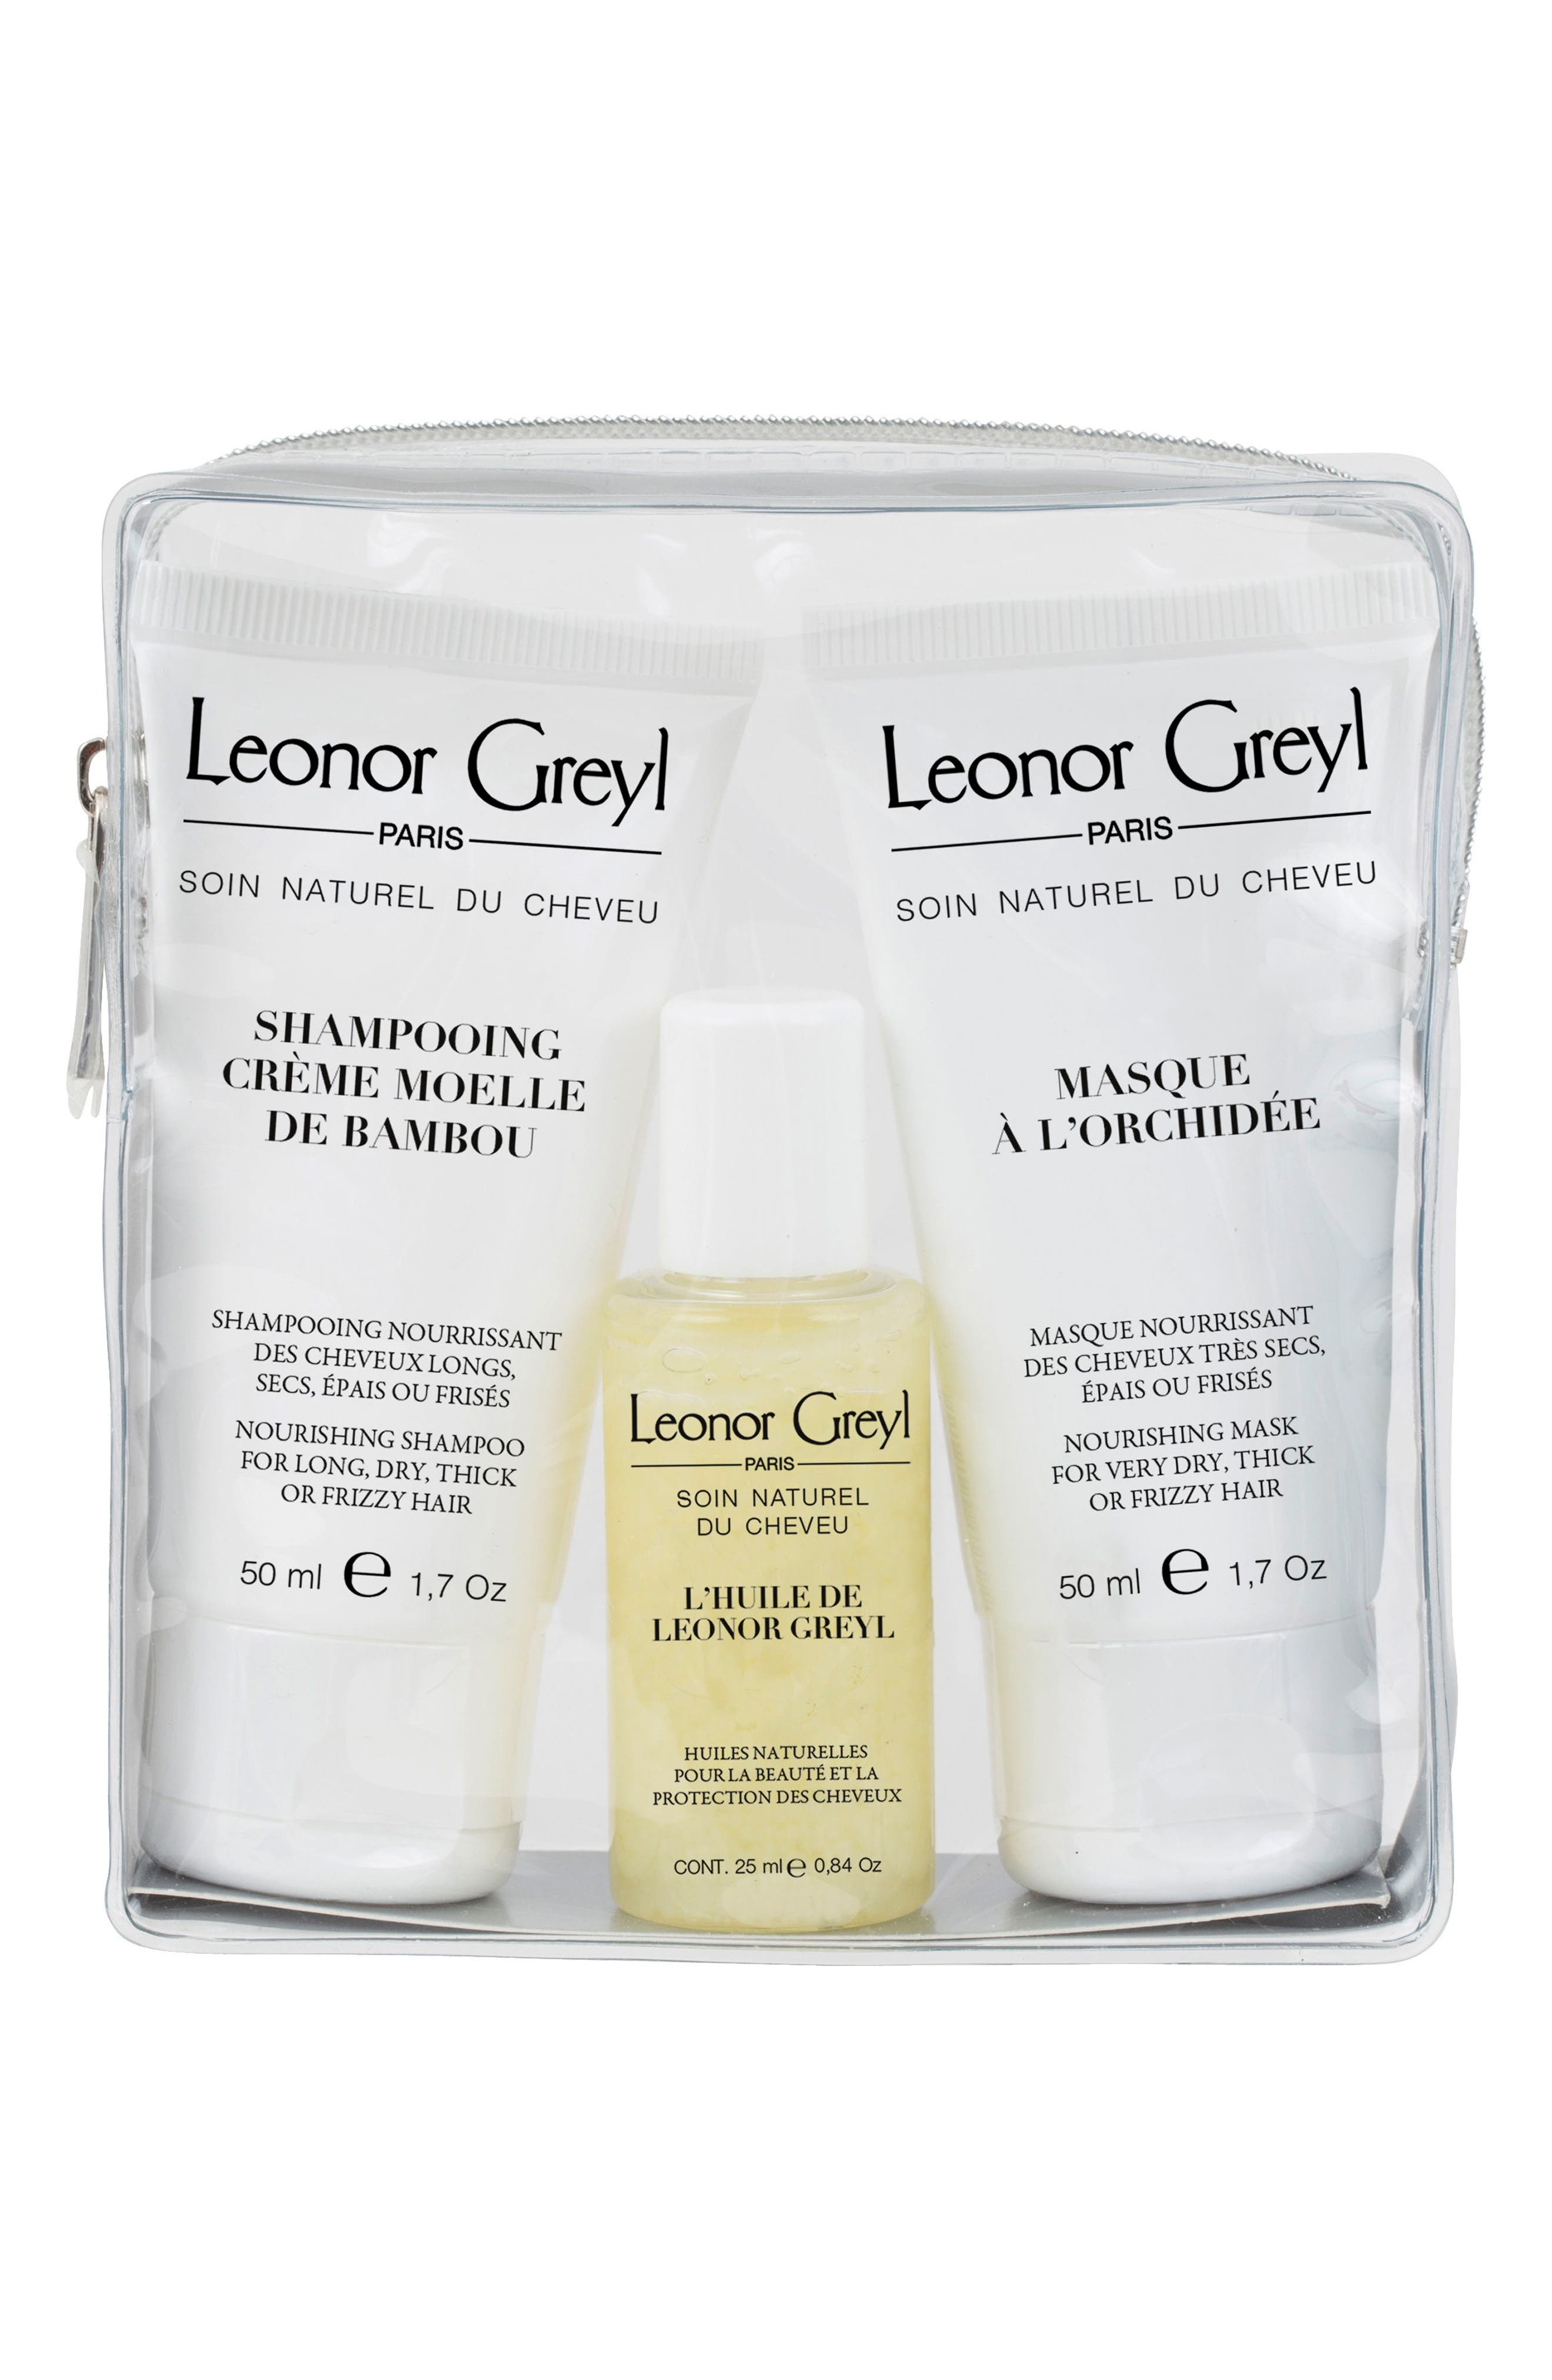 Luxury Travel Kit for Very Dry, Thick or Curly Hair,                         Main,                         color, No Color